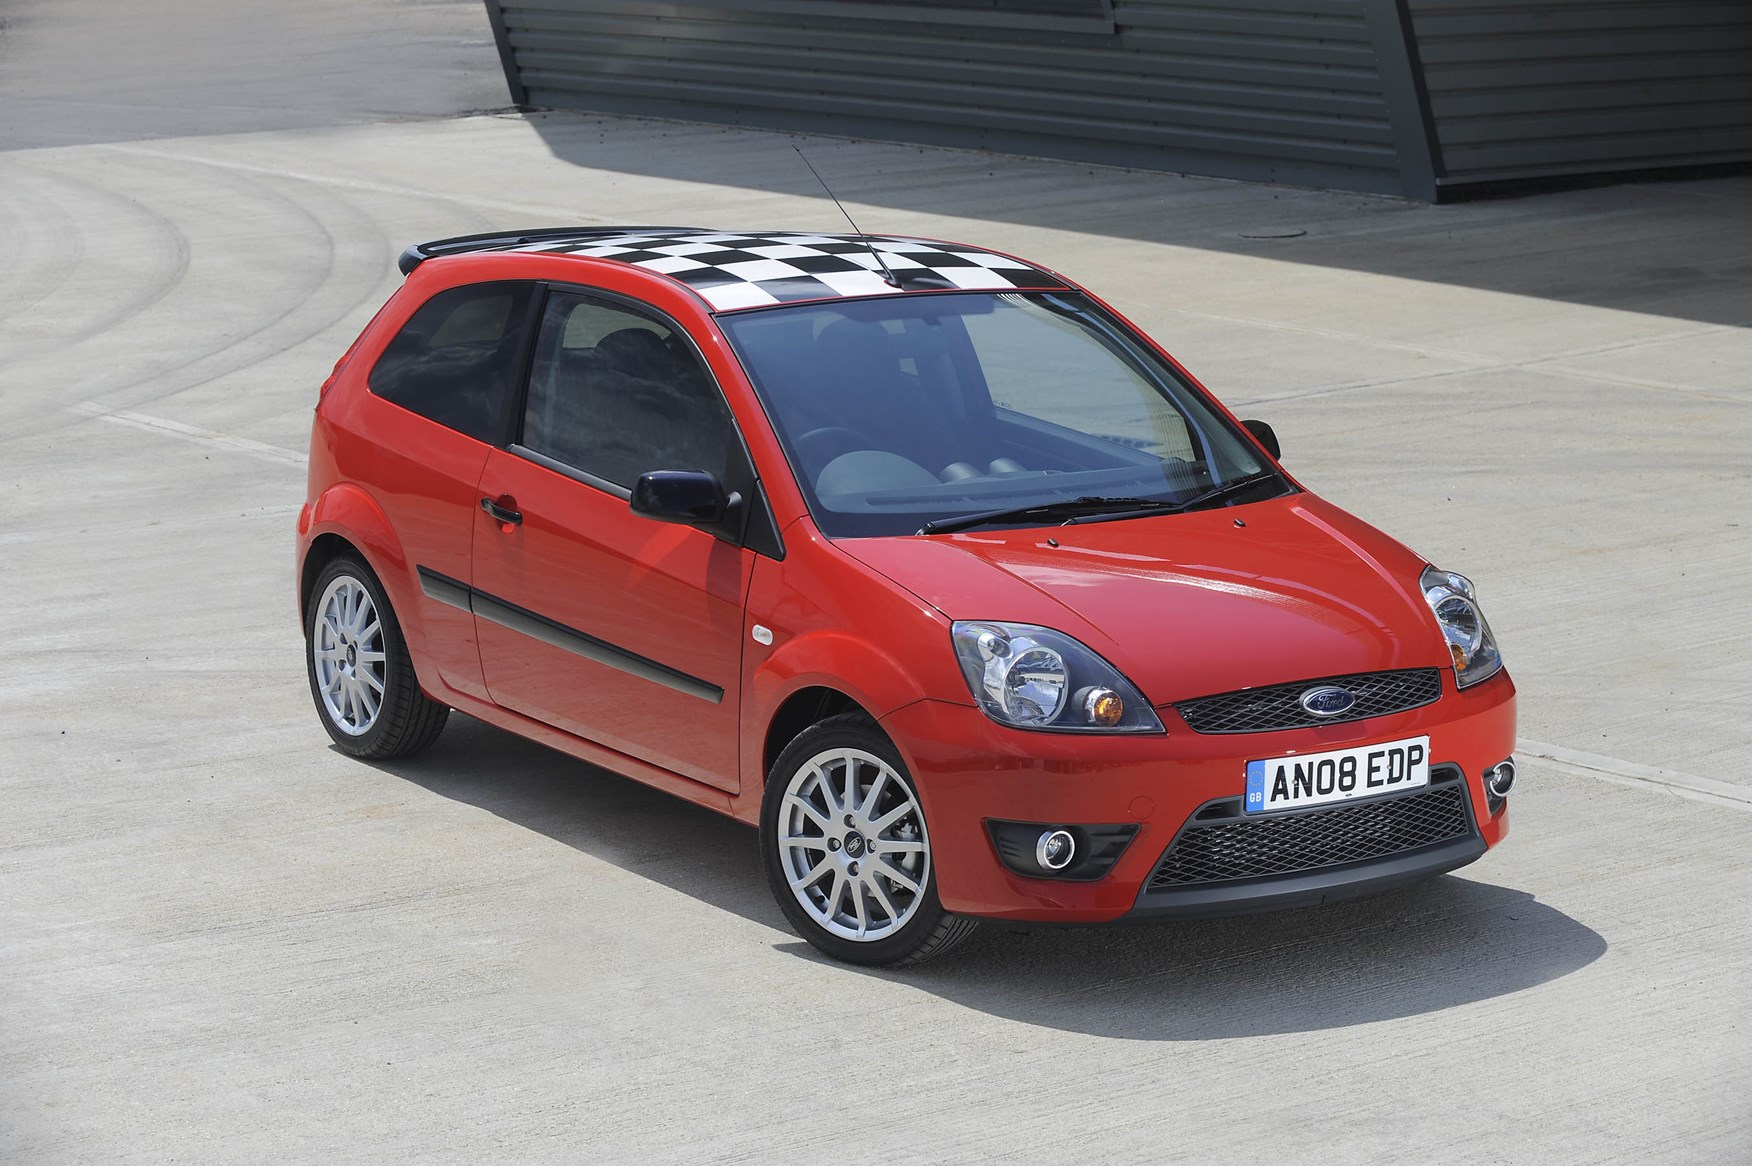 Ford Fiesta Hatchback >> Ford Fiesta Hatchback (2002 - 2008) Features, Equipment and Accessories | Parkers